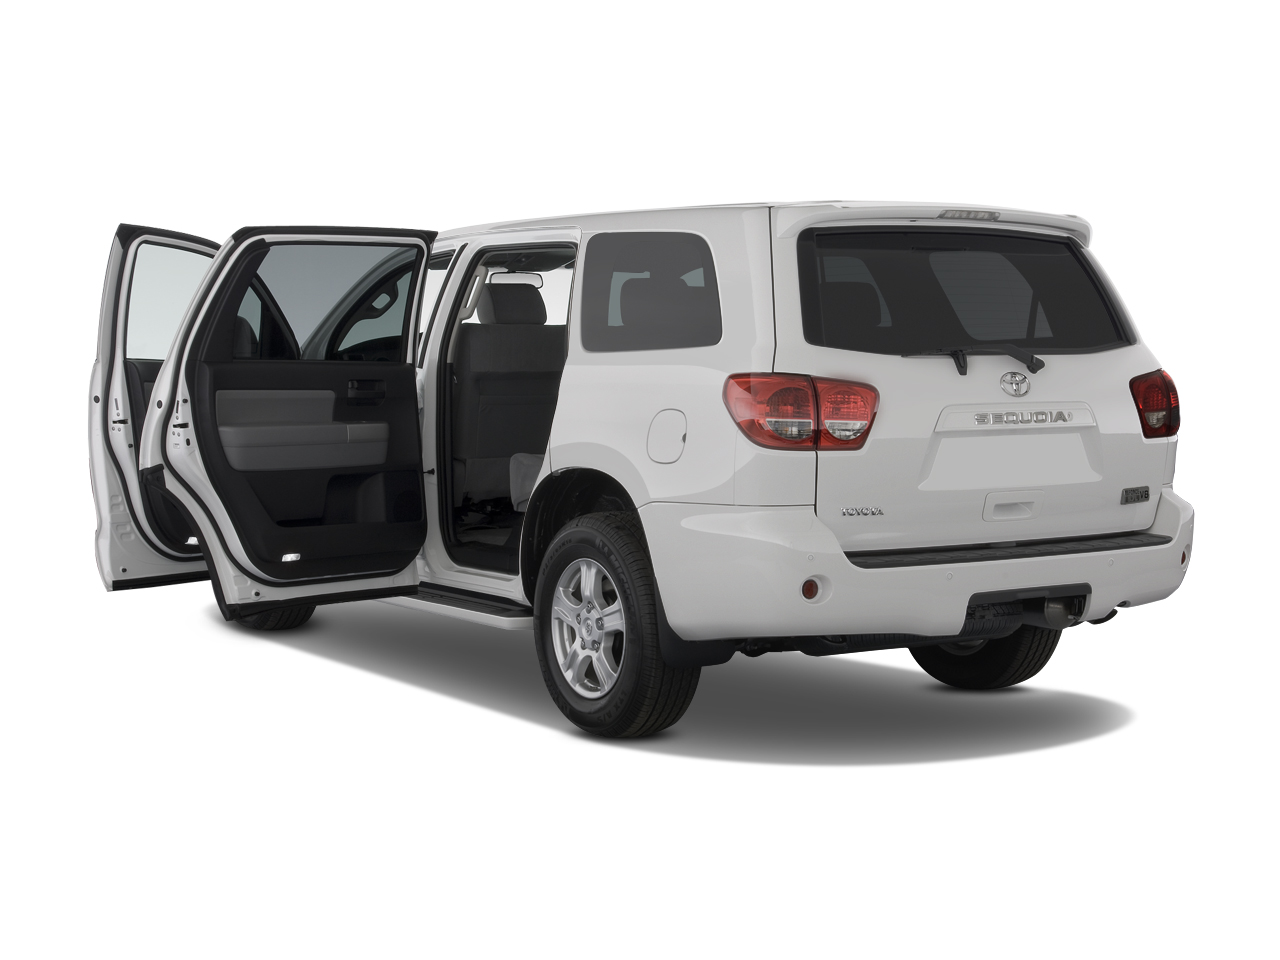 Toyota Sequoia II 2008 - now SUV 5 door #1